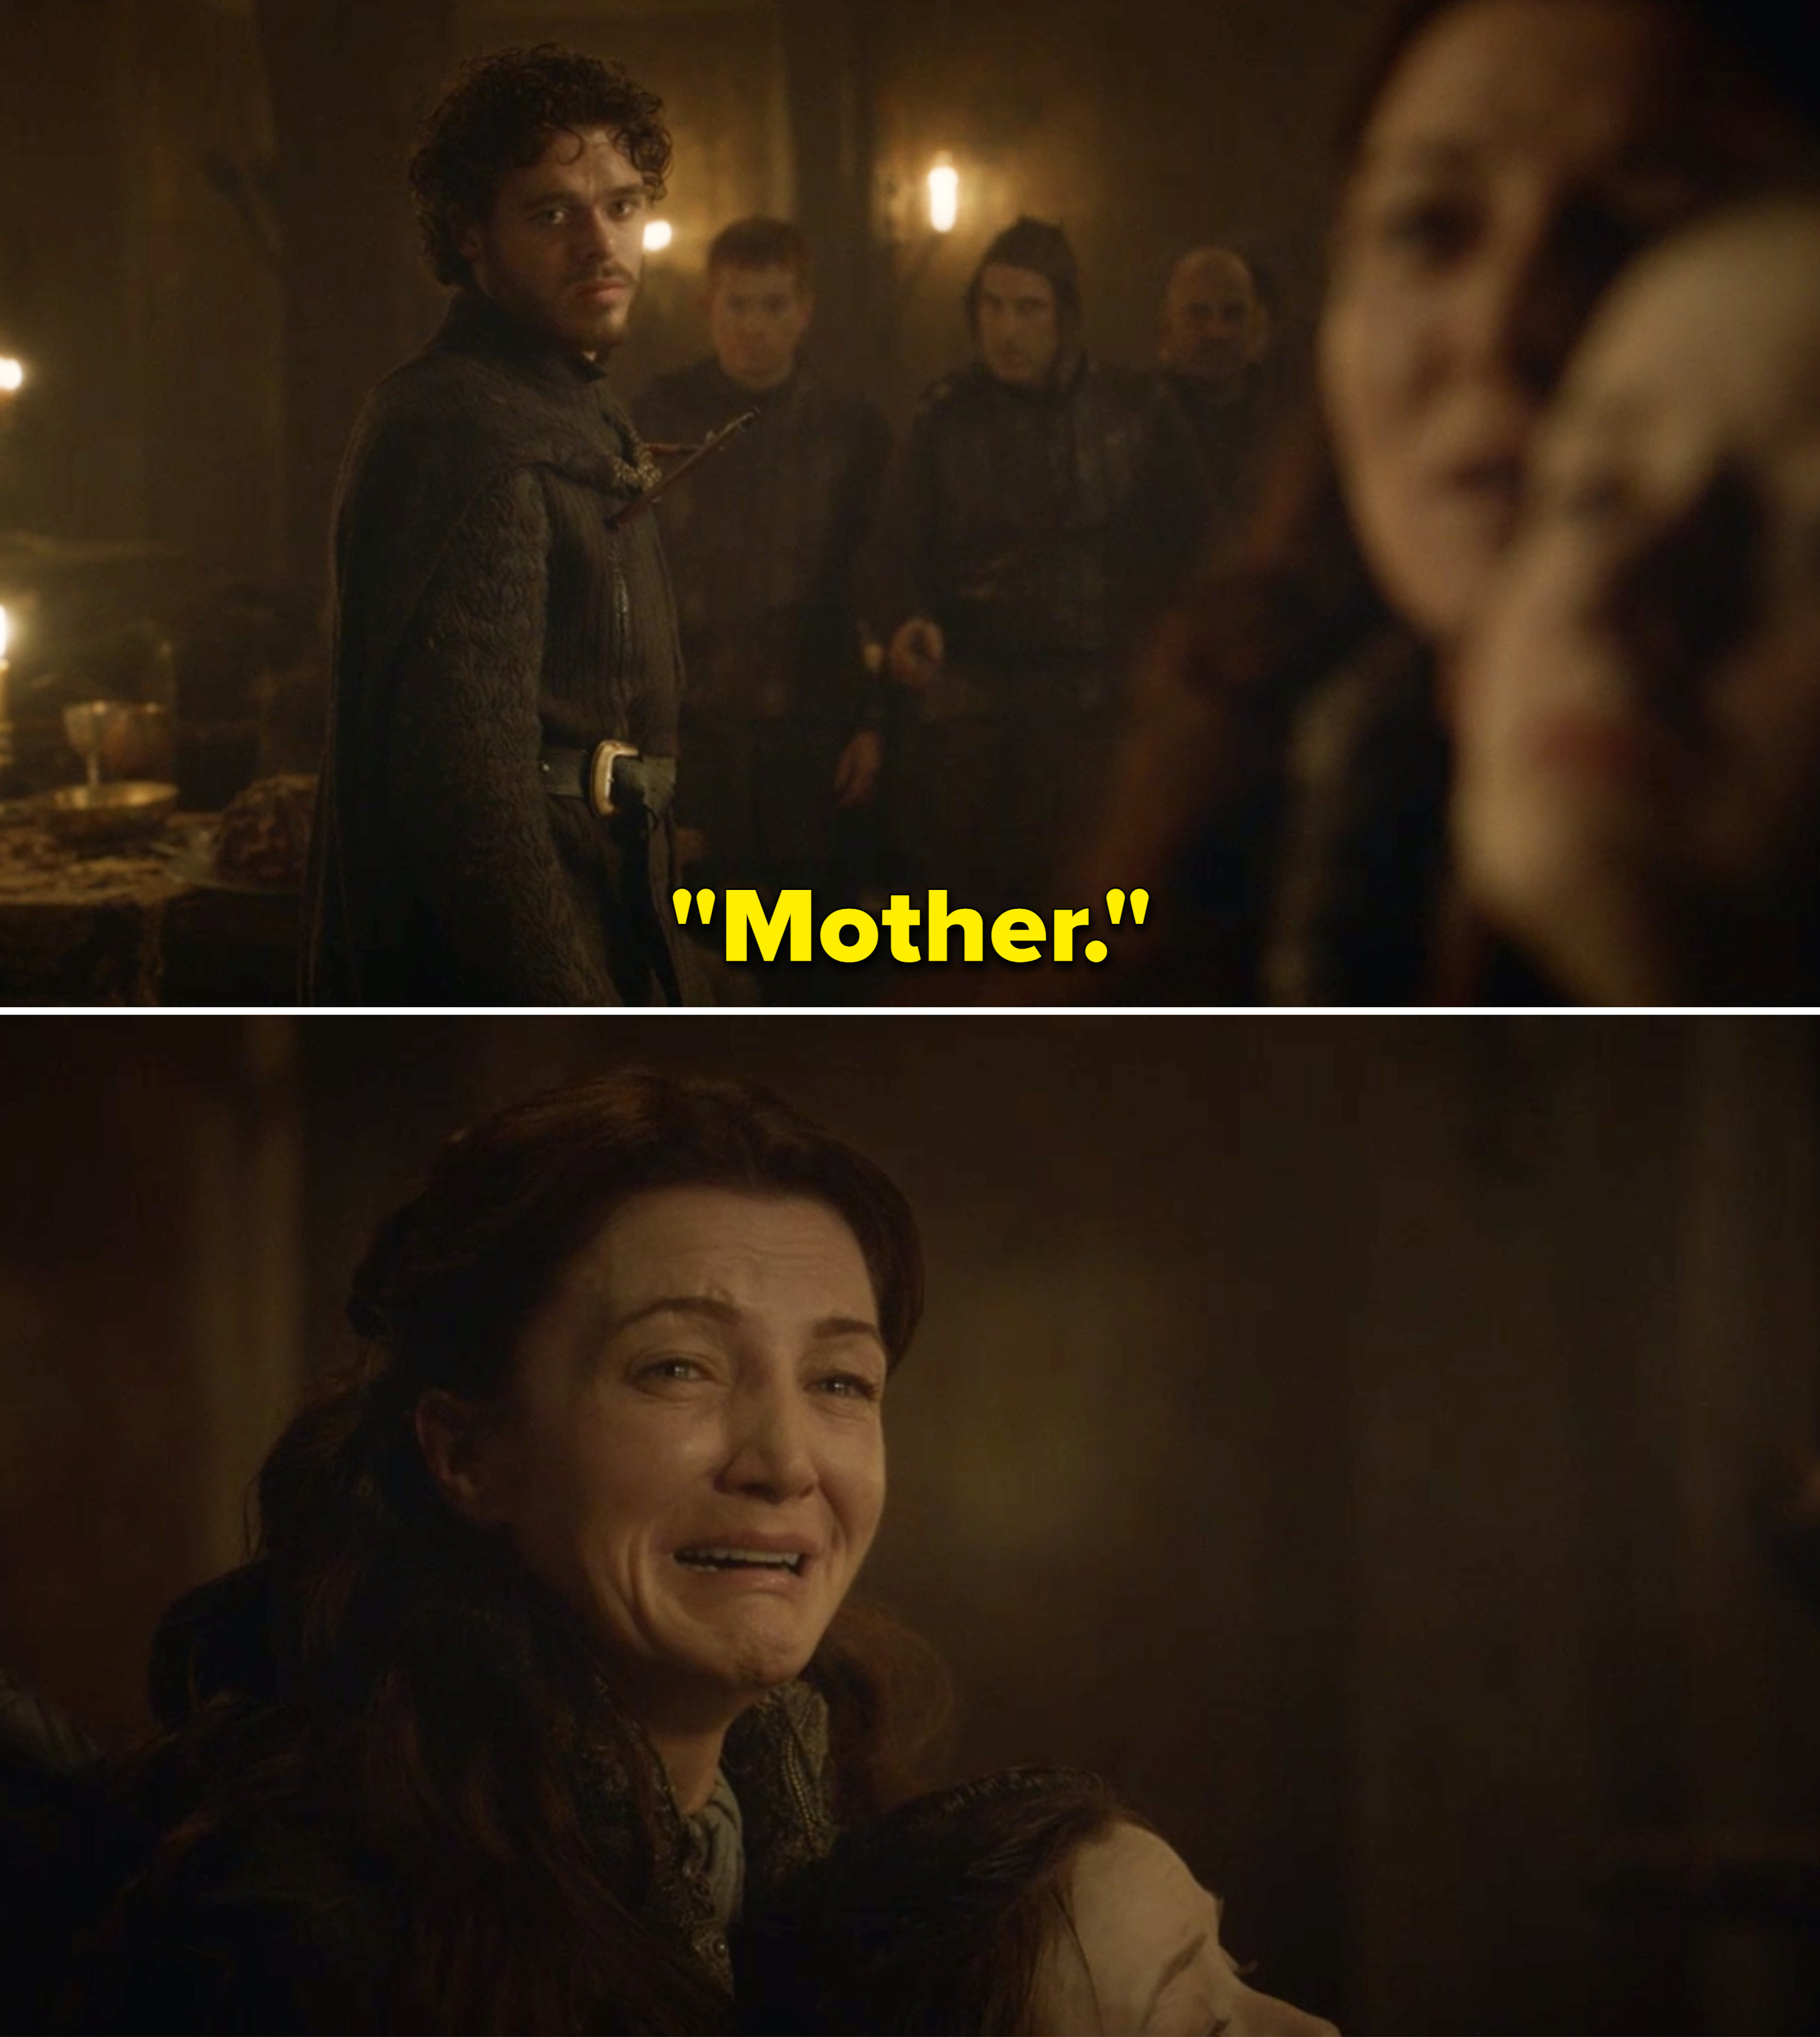 """Robb saying, """"Mother,"""" while Catelyn cries"""